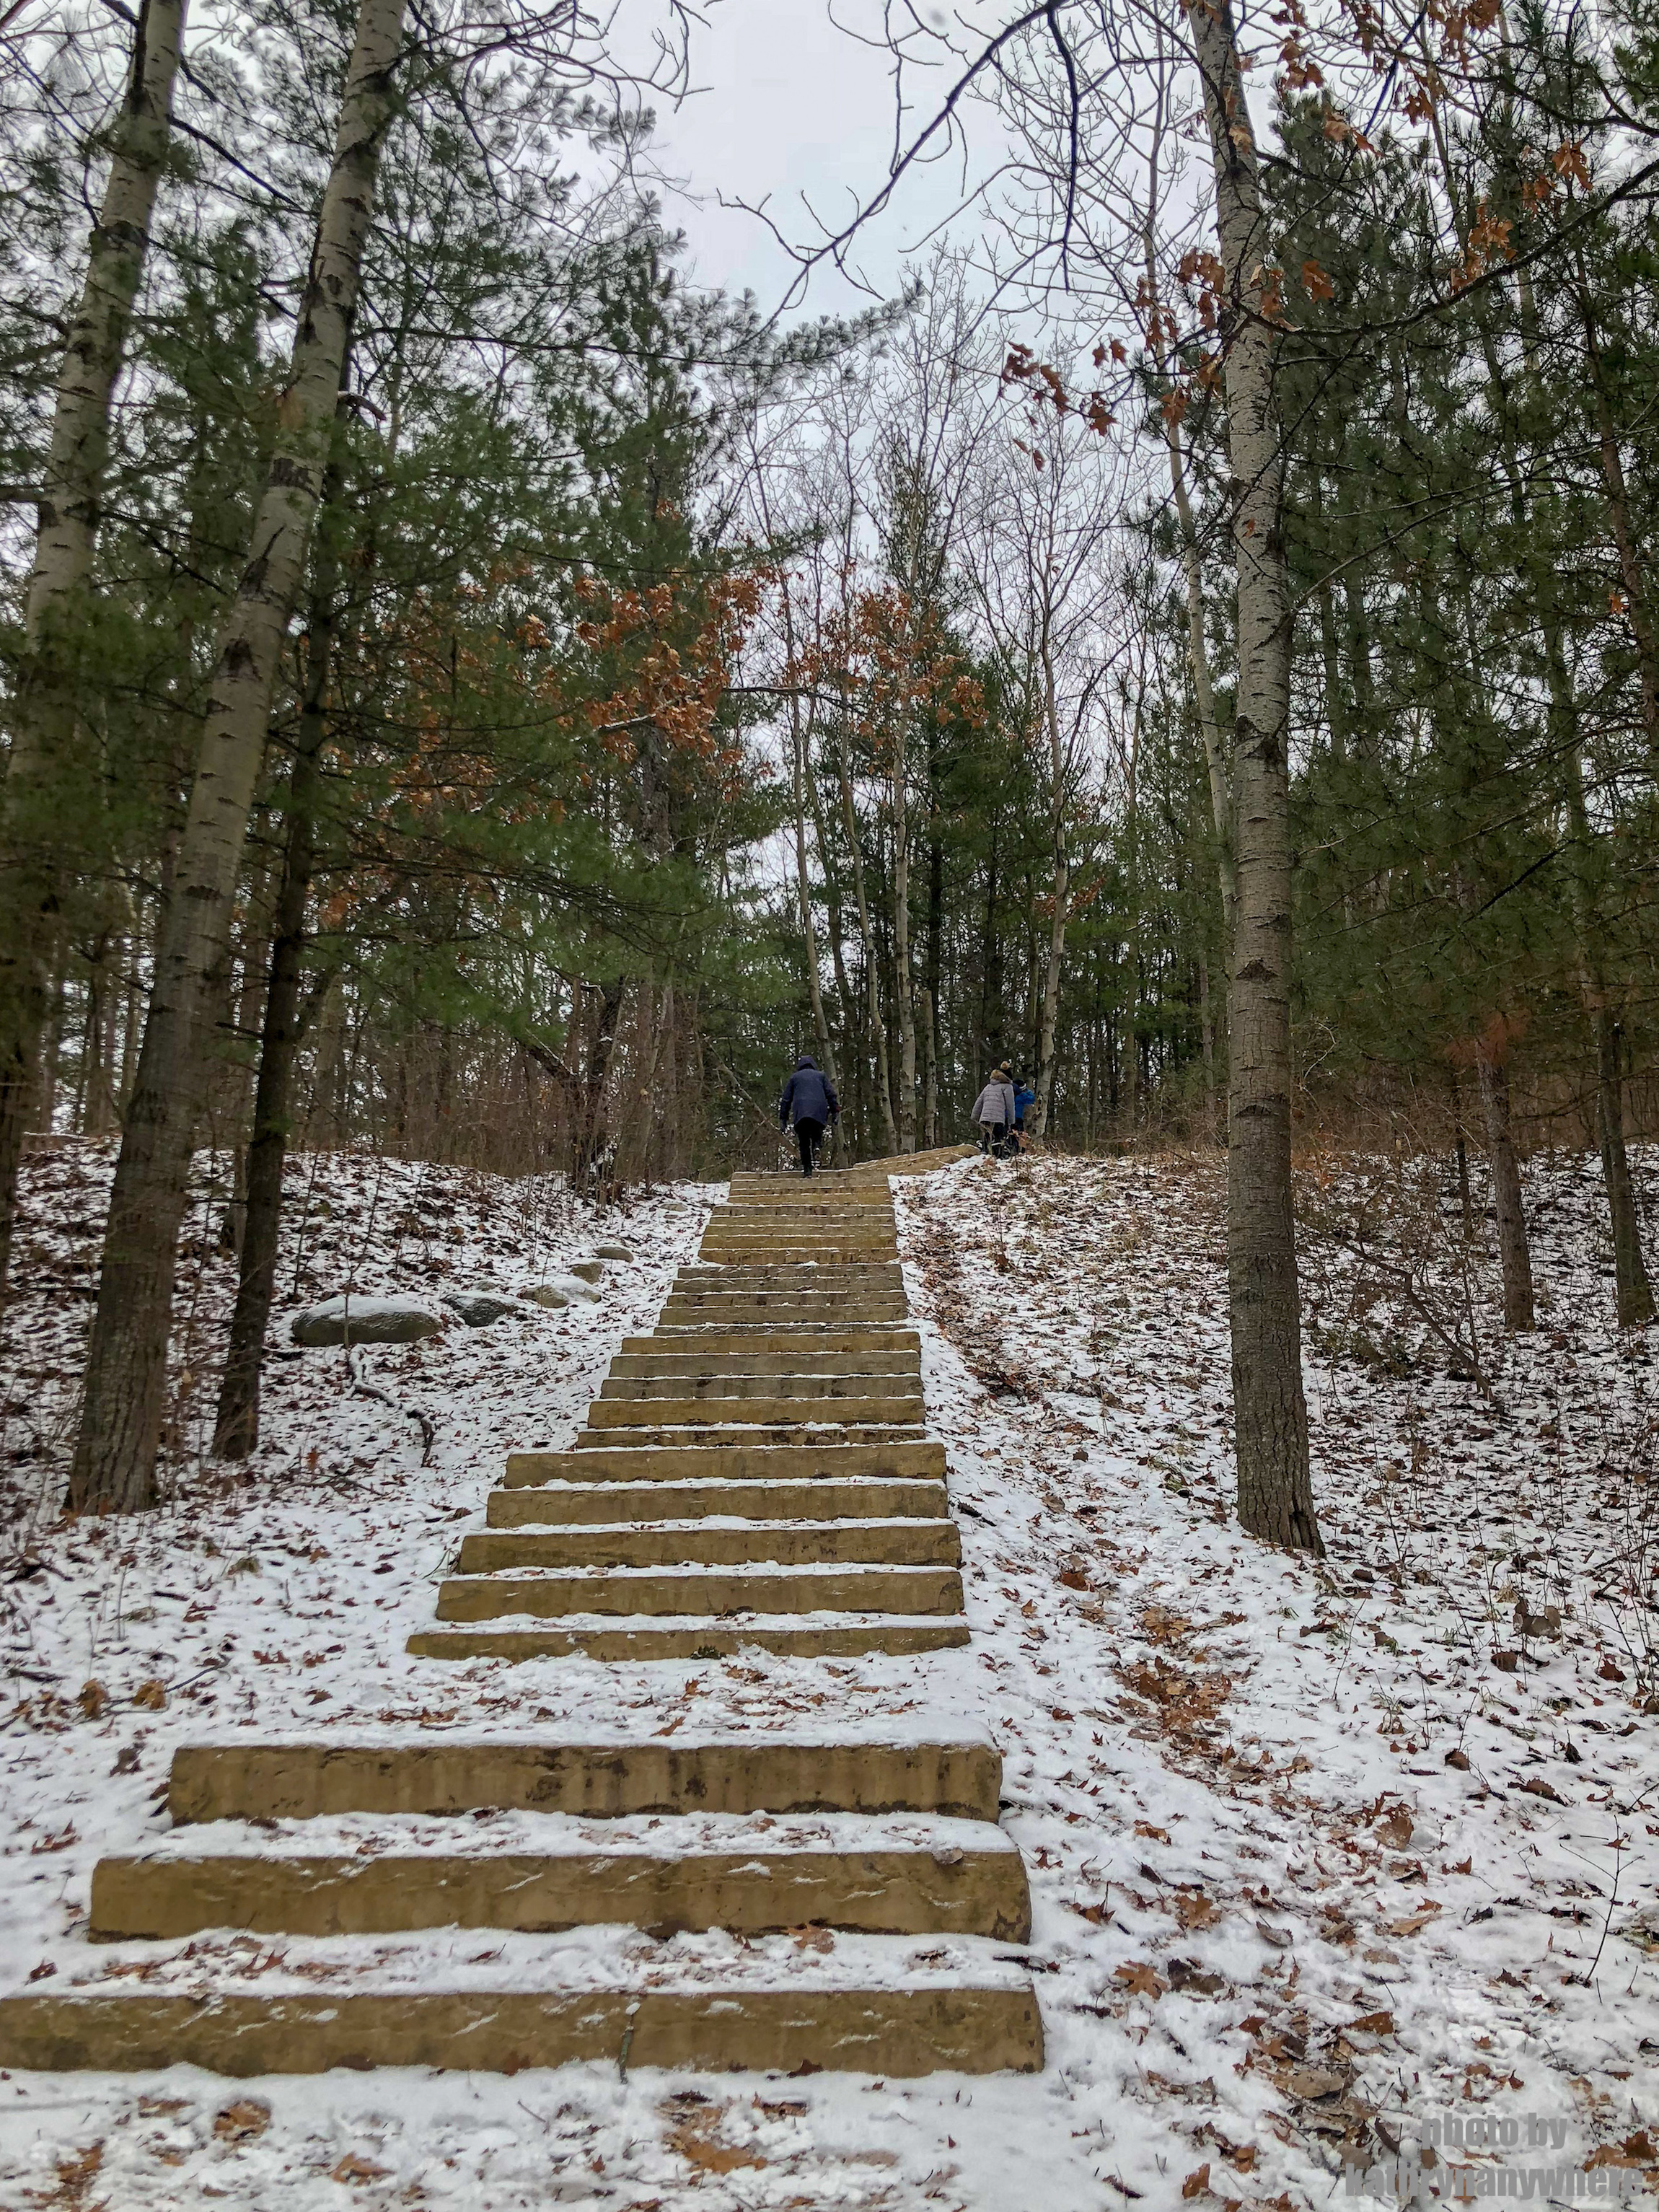 First set of stairs on the Sager Conservation Area Trail hike #sagerconservationarea #womenwhohike #wanderlust #getoutstayout #letsgosomewhere #exploretocreate #adventurelife #theoutbound #thosewhostray #traveldeeper #sheisnotlost #neverstopexploring #exploreclub #conservationarea #sagerconservation #yourstodiscover #discoverON